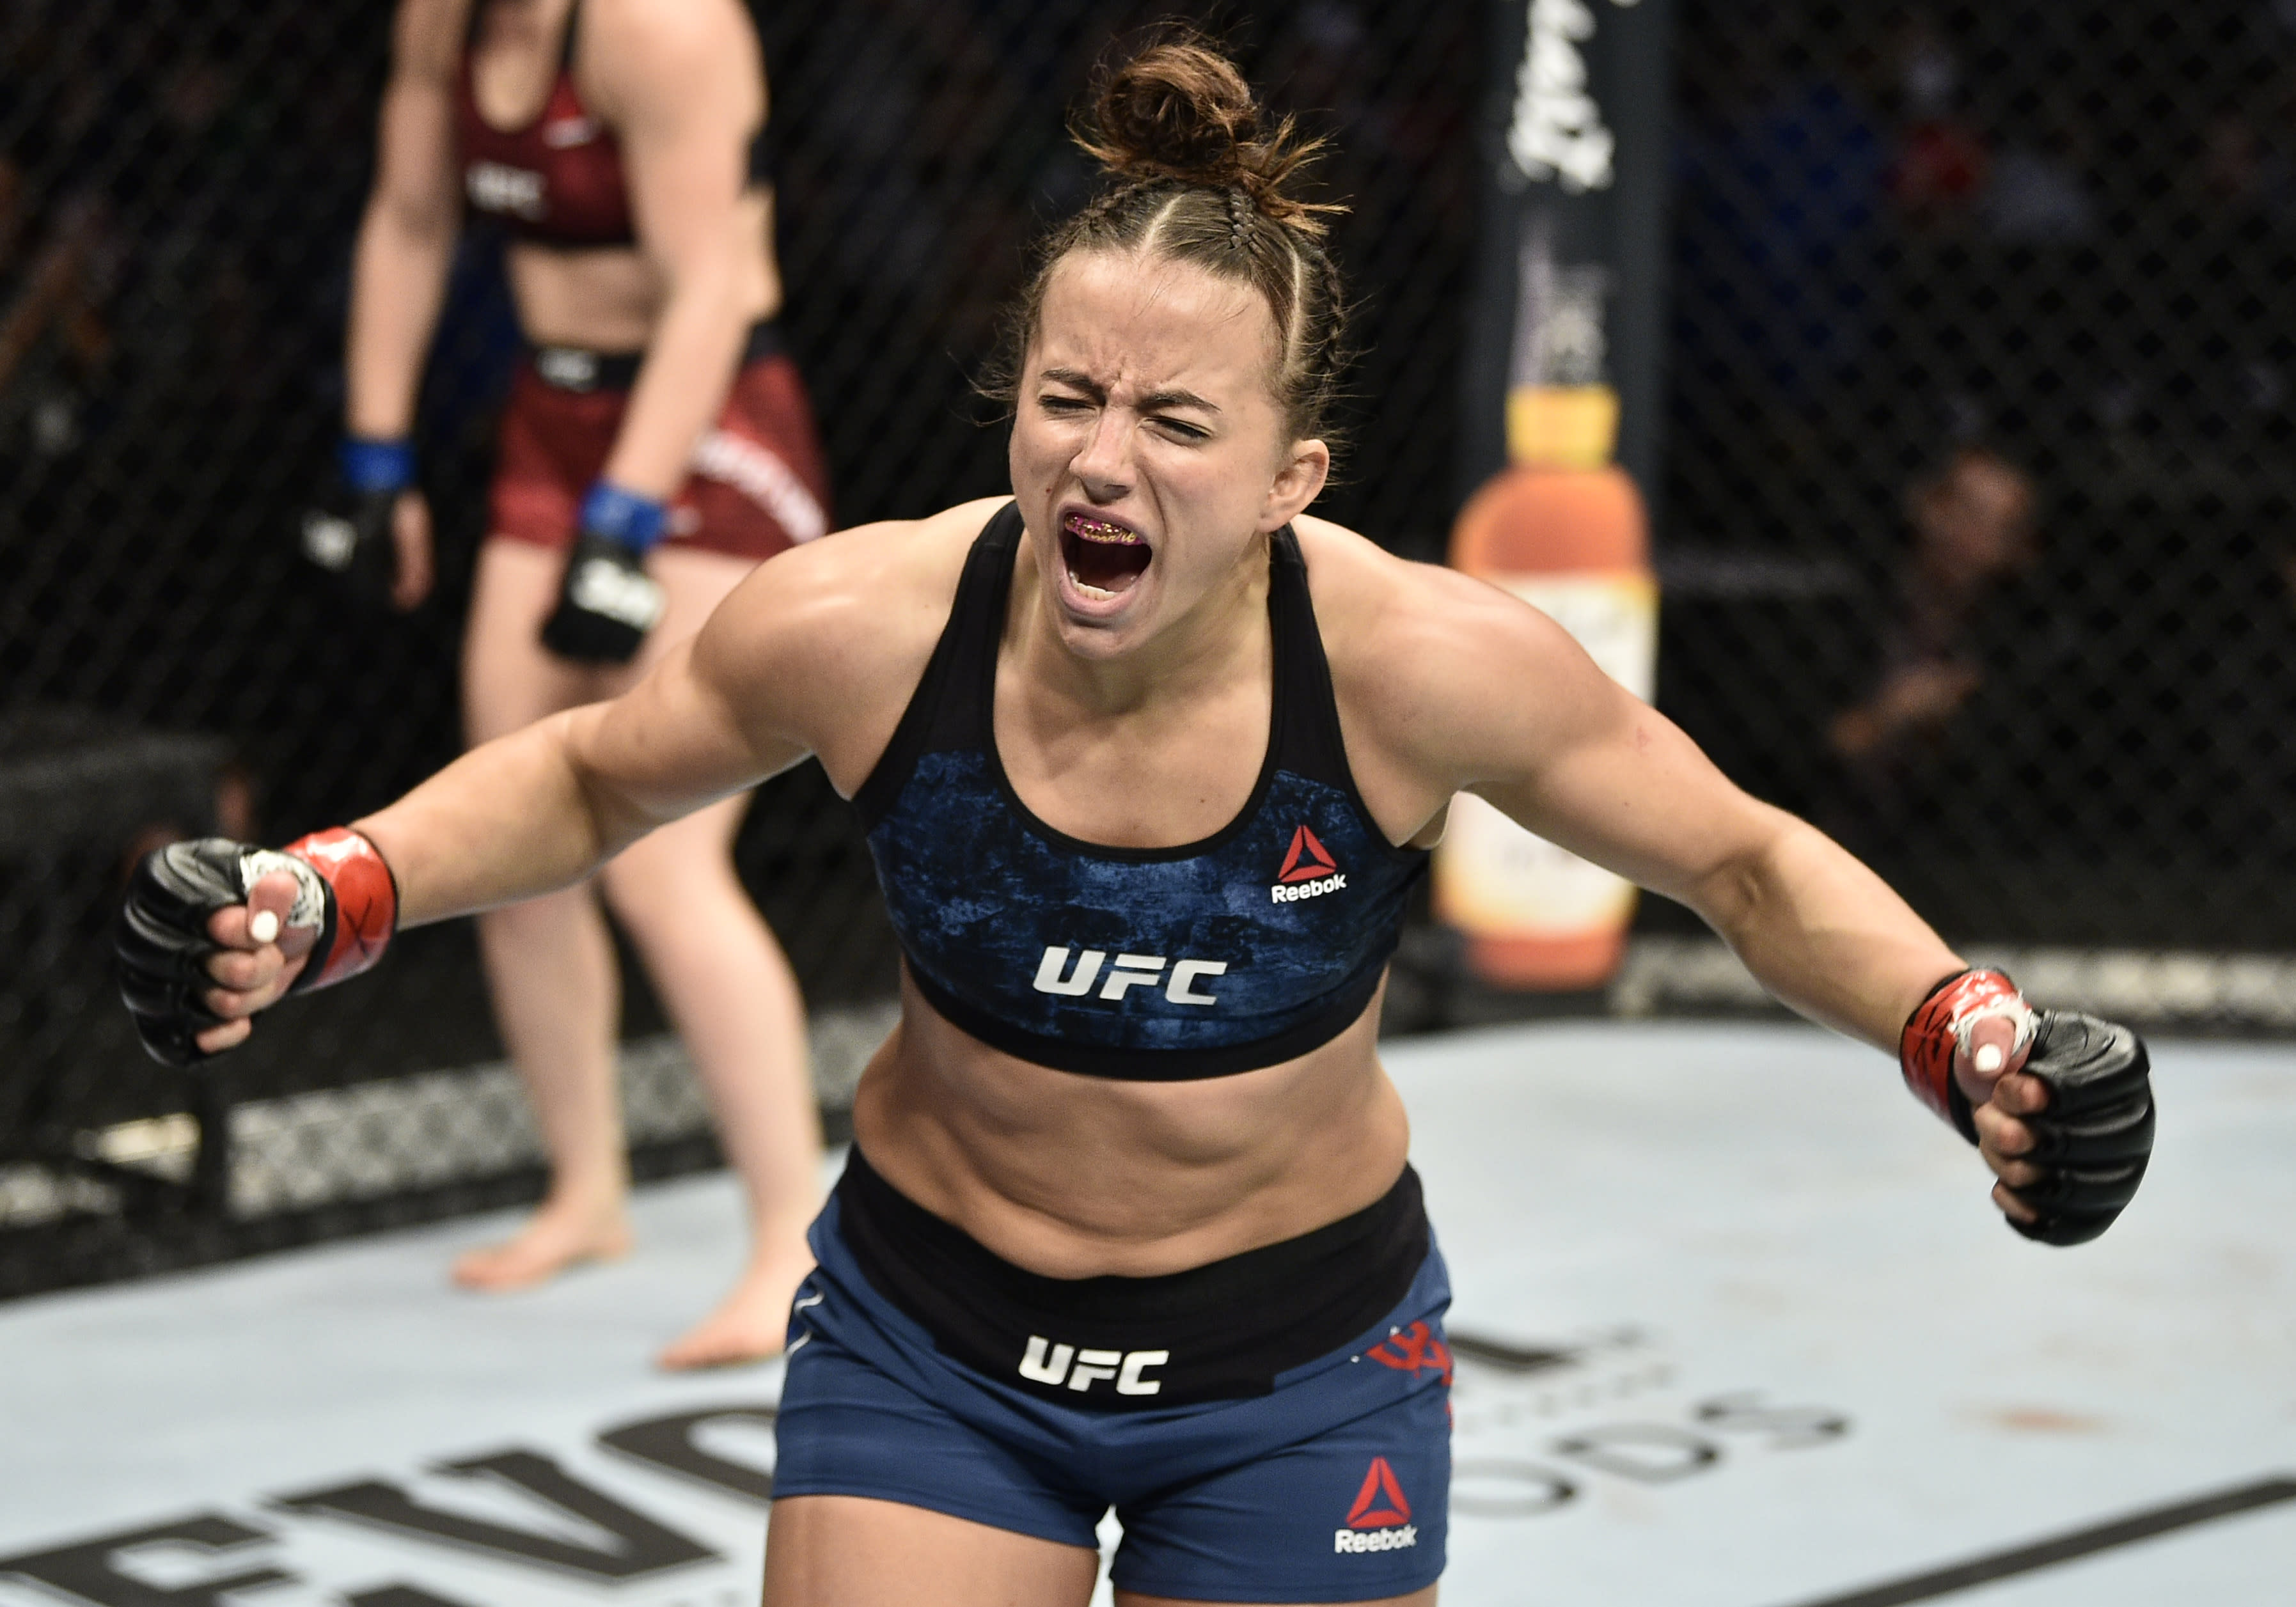 Dana White could see Maycee Barber getting title shot in 2020